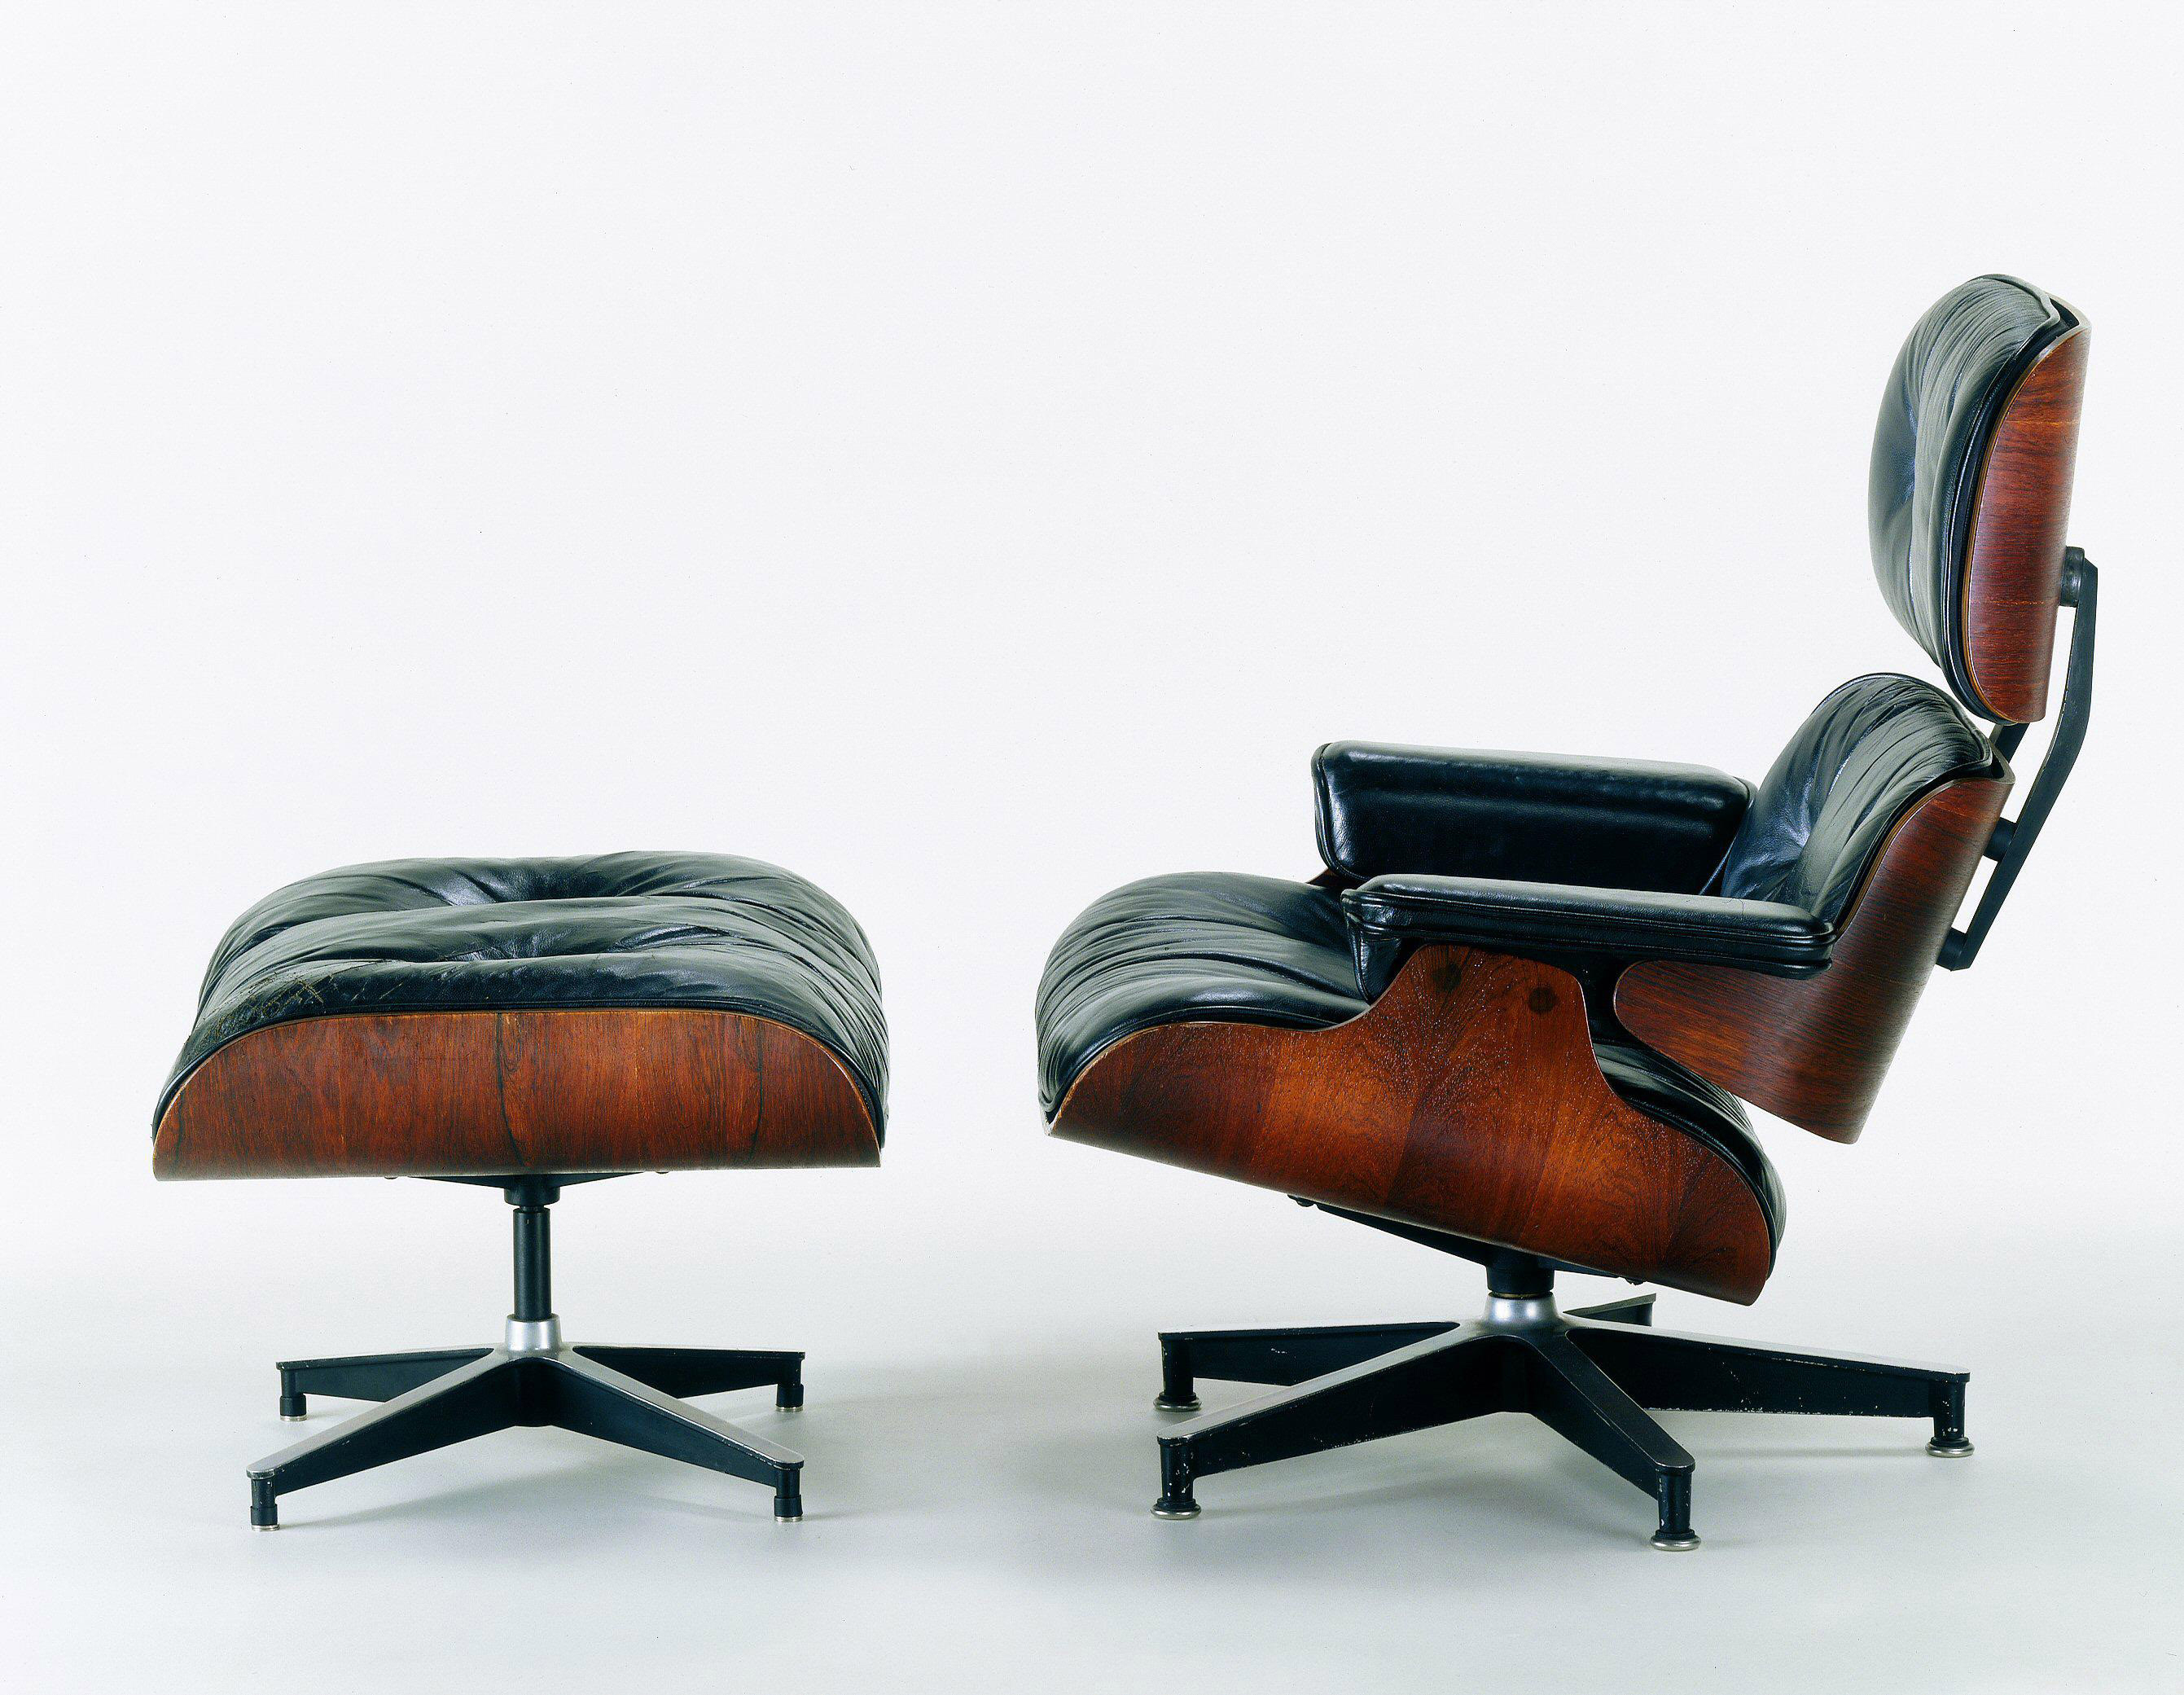 Eames Lounge Chair Manufacturing In The Vitra Atelier